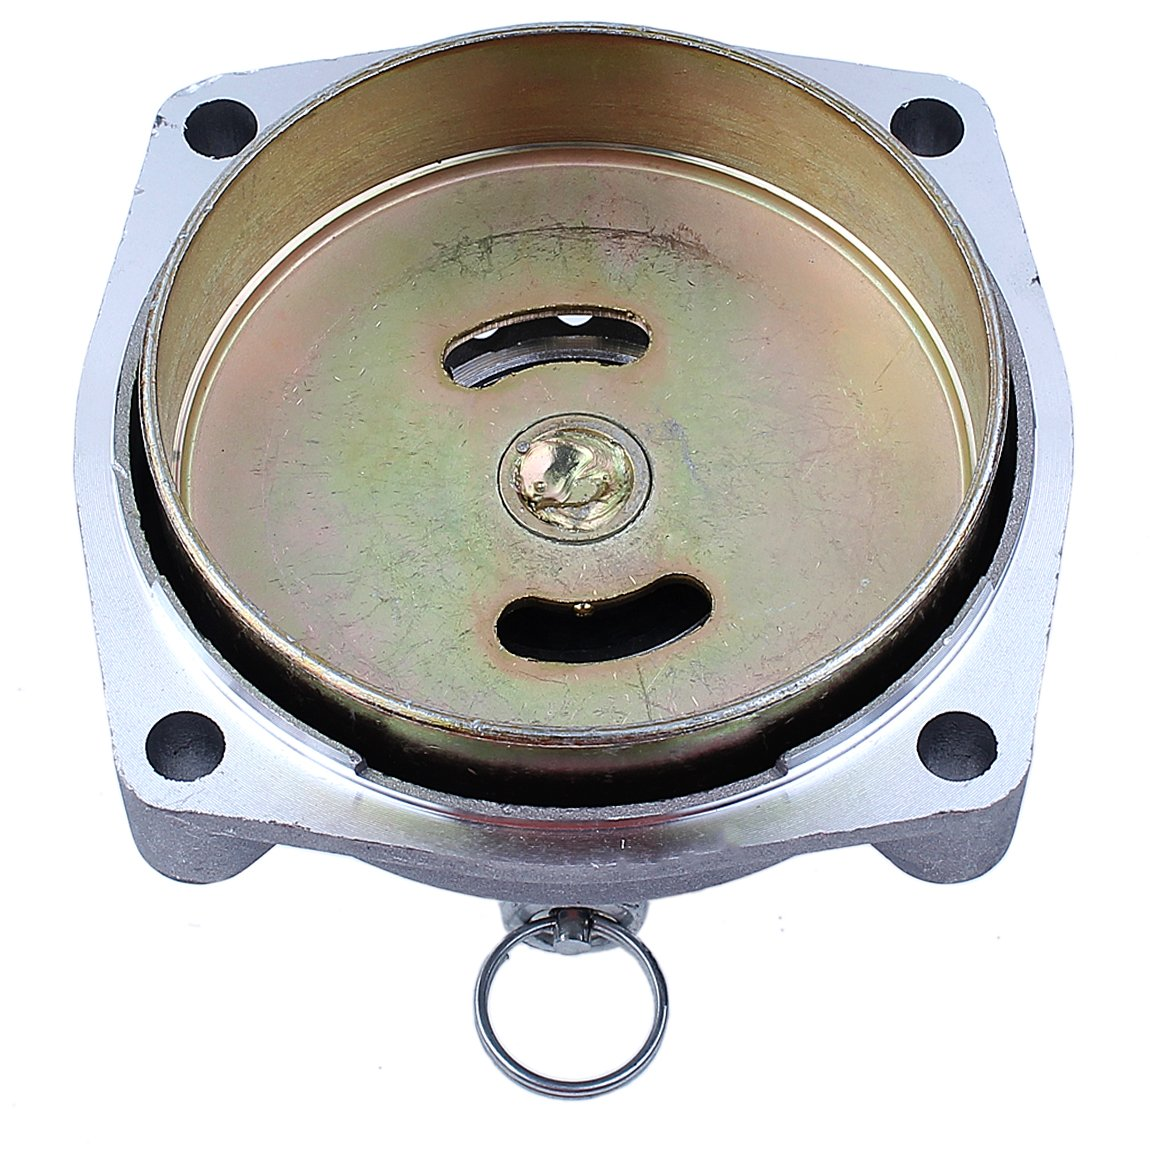 Amazon.com: Clutch Drum Cover Assembly Fit HONDA GX31 GX35 GX35NT GX 31 35 35NT HHT31S Strimmer Trimmers Brush Cutter: Home Improvement